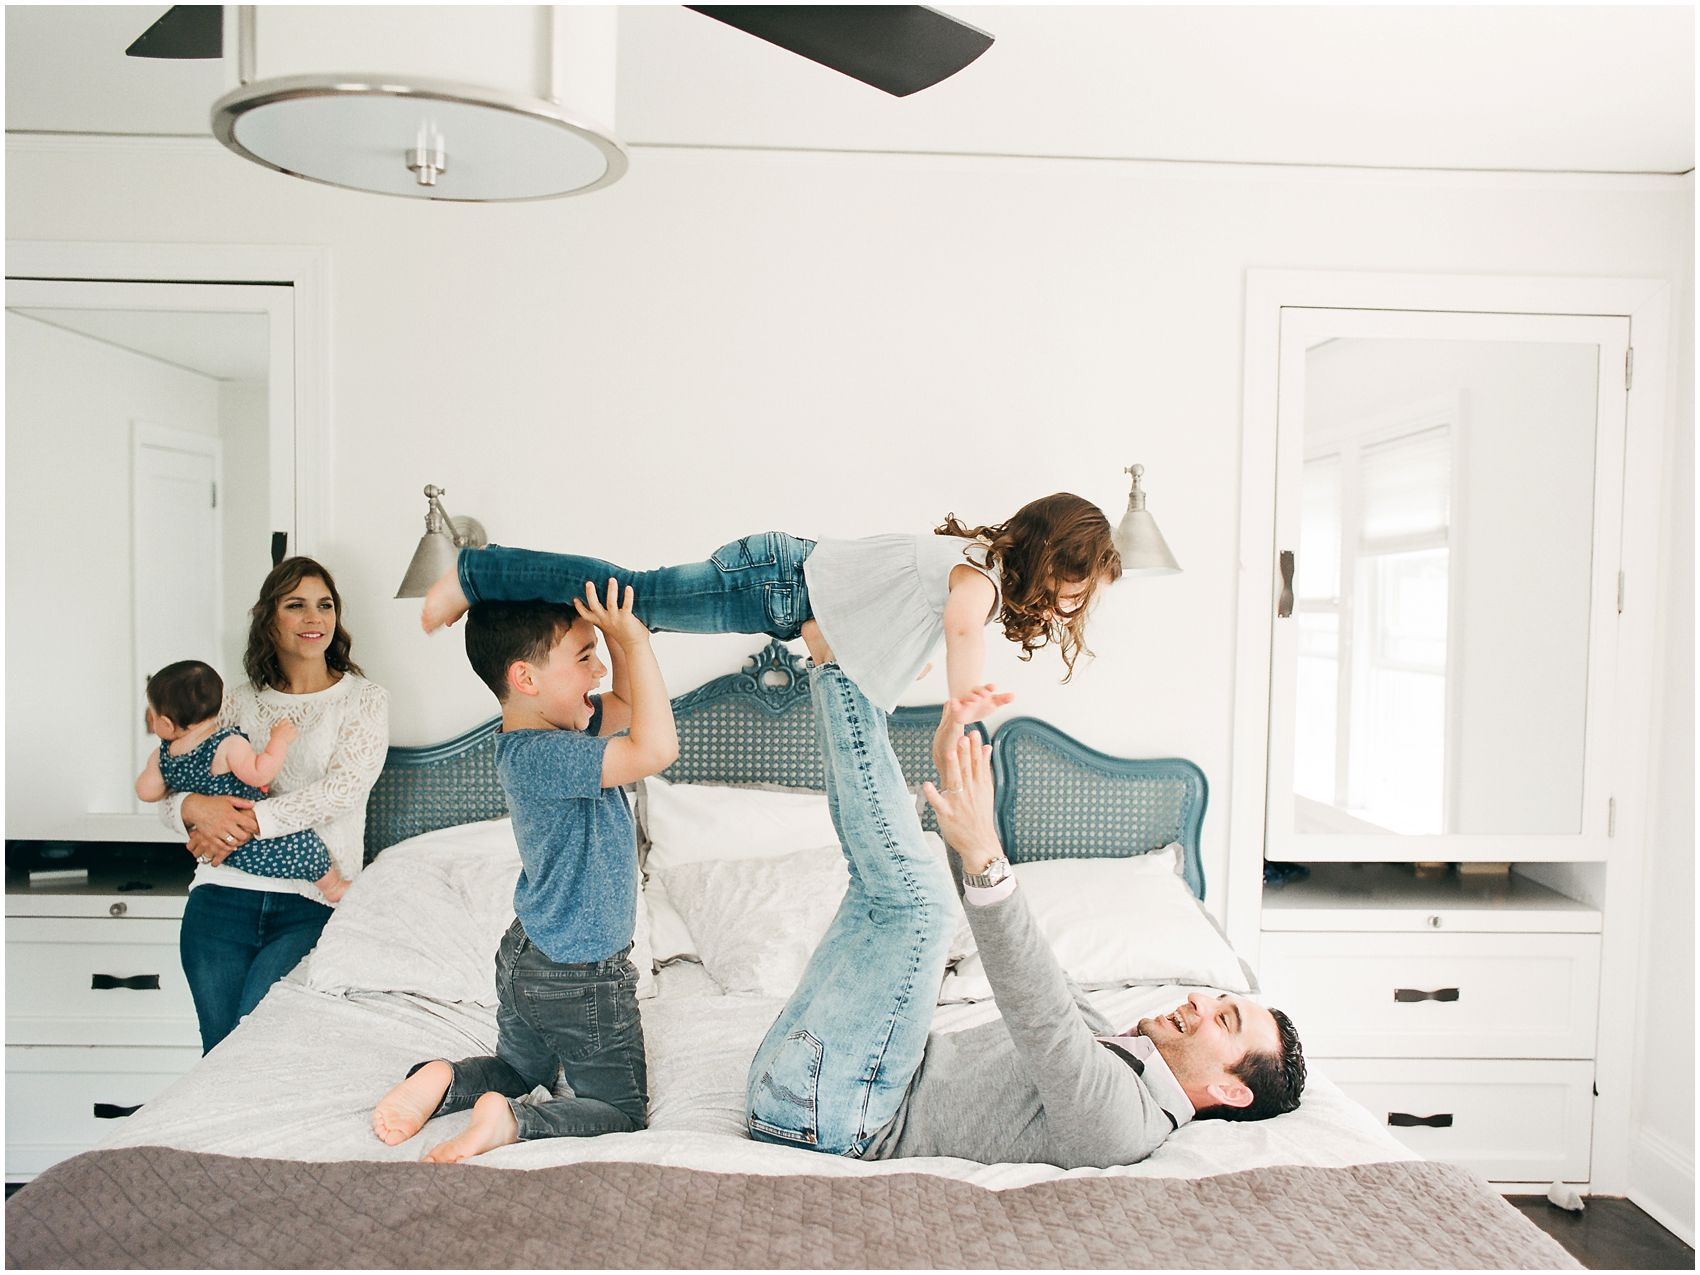 family lifestyle portrait of dad playing with kids family acrobatics on bed and mom with baby smiling at them